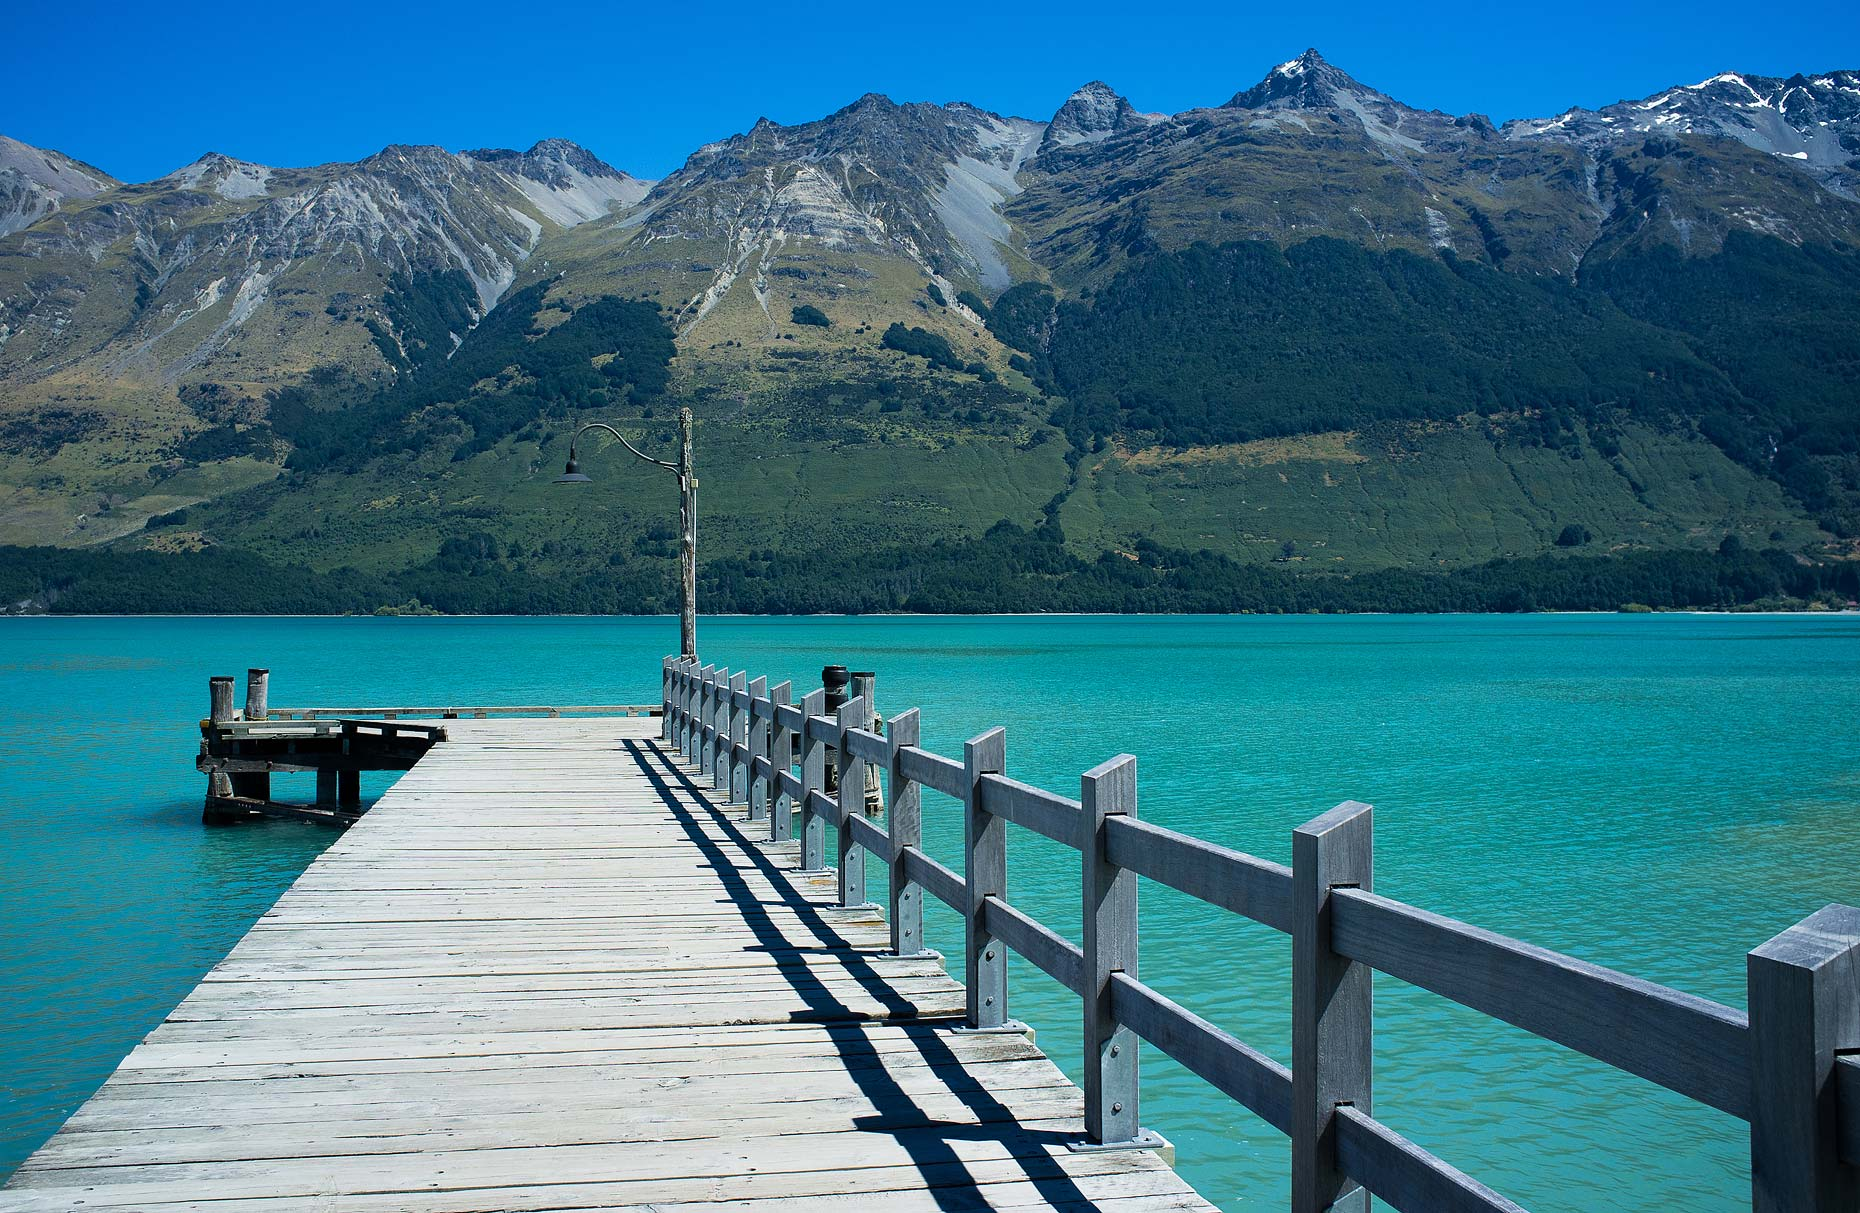 Paradise-New-Zealand-Dock-Travel